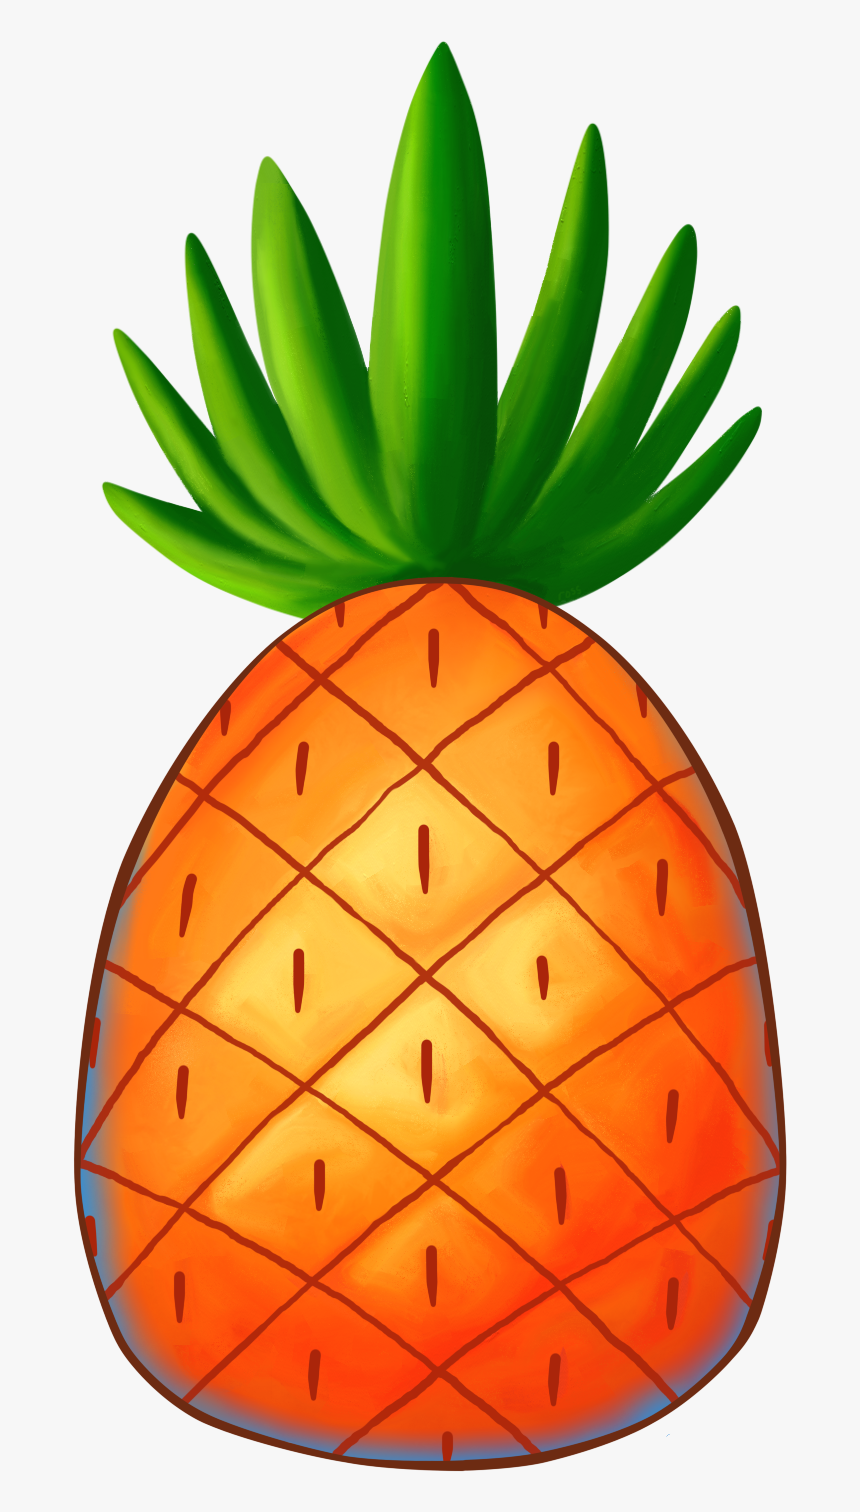 Tumblr Collage Stickers Png - Spongebob Pineapple Png, Transparent Png, Free Download